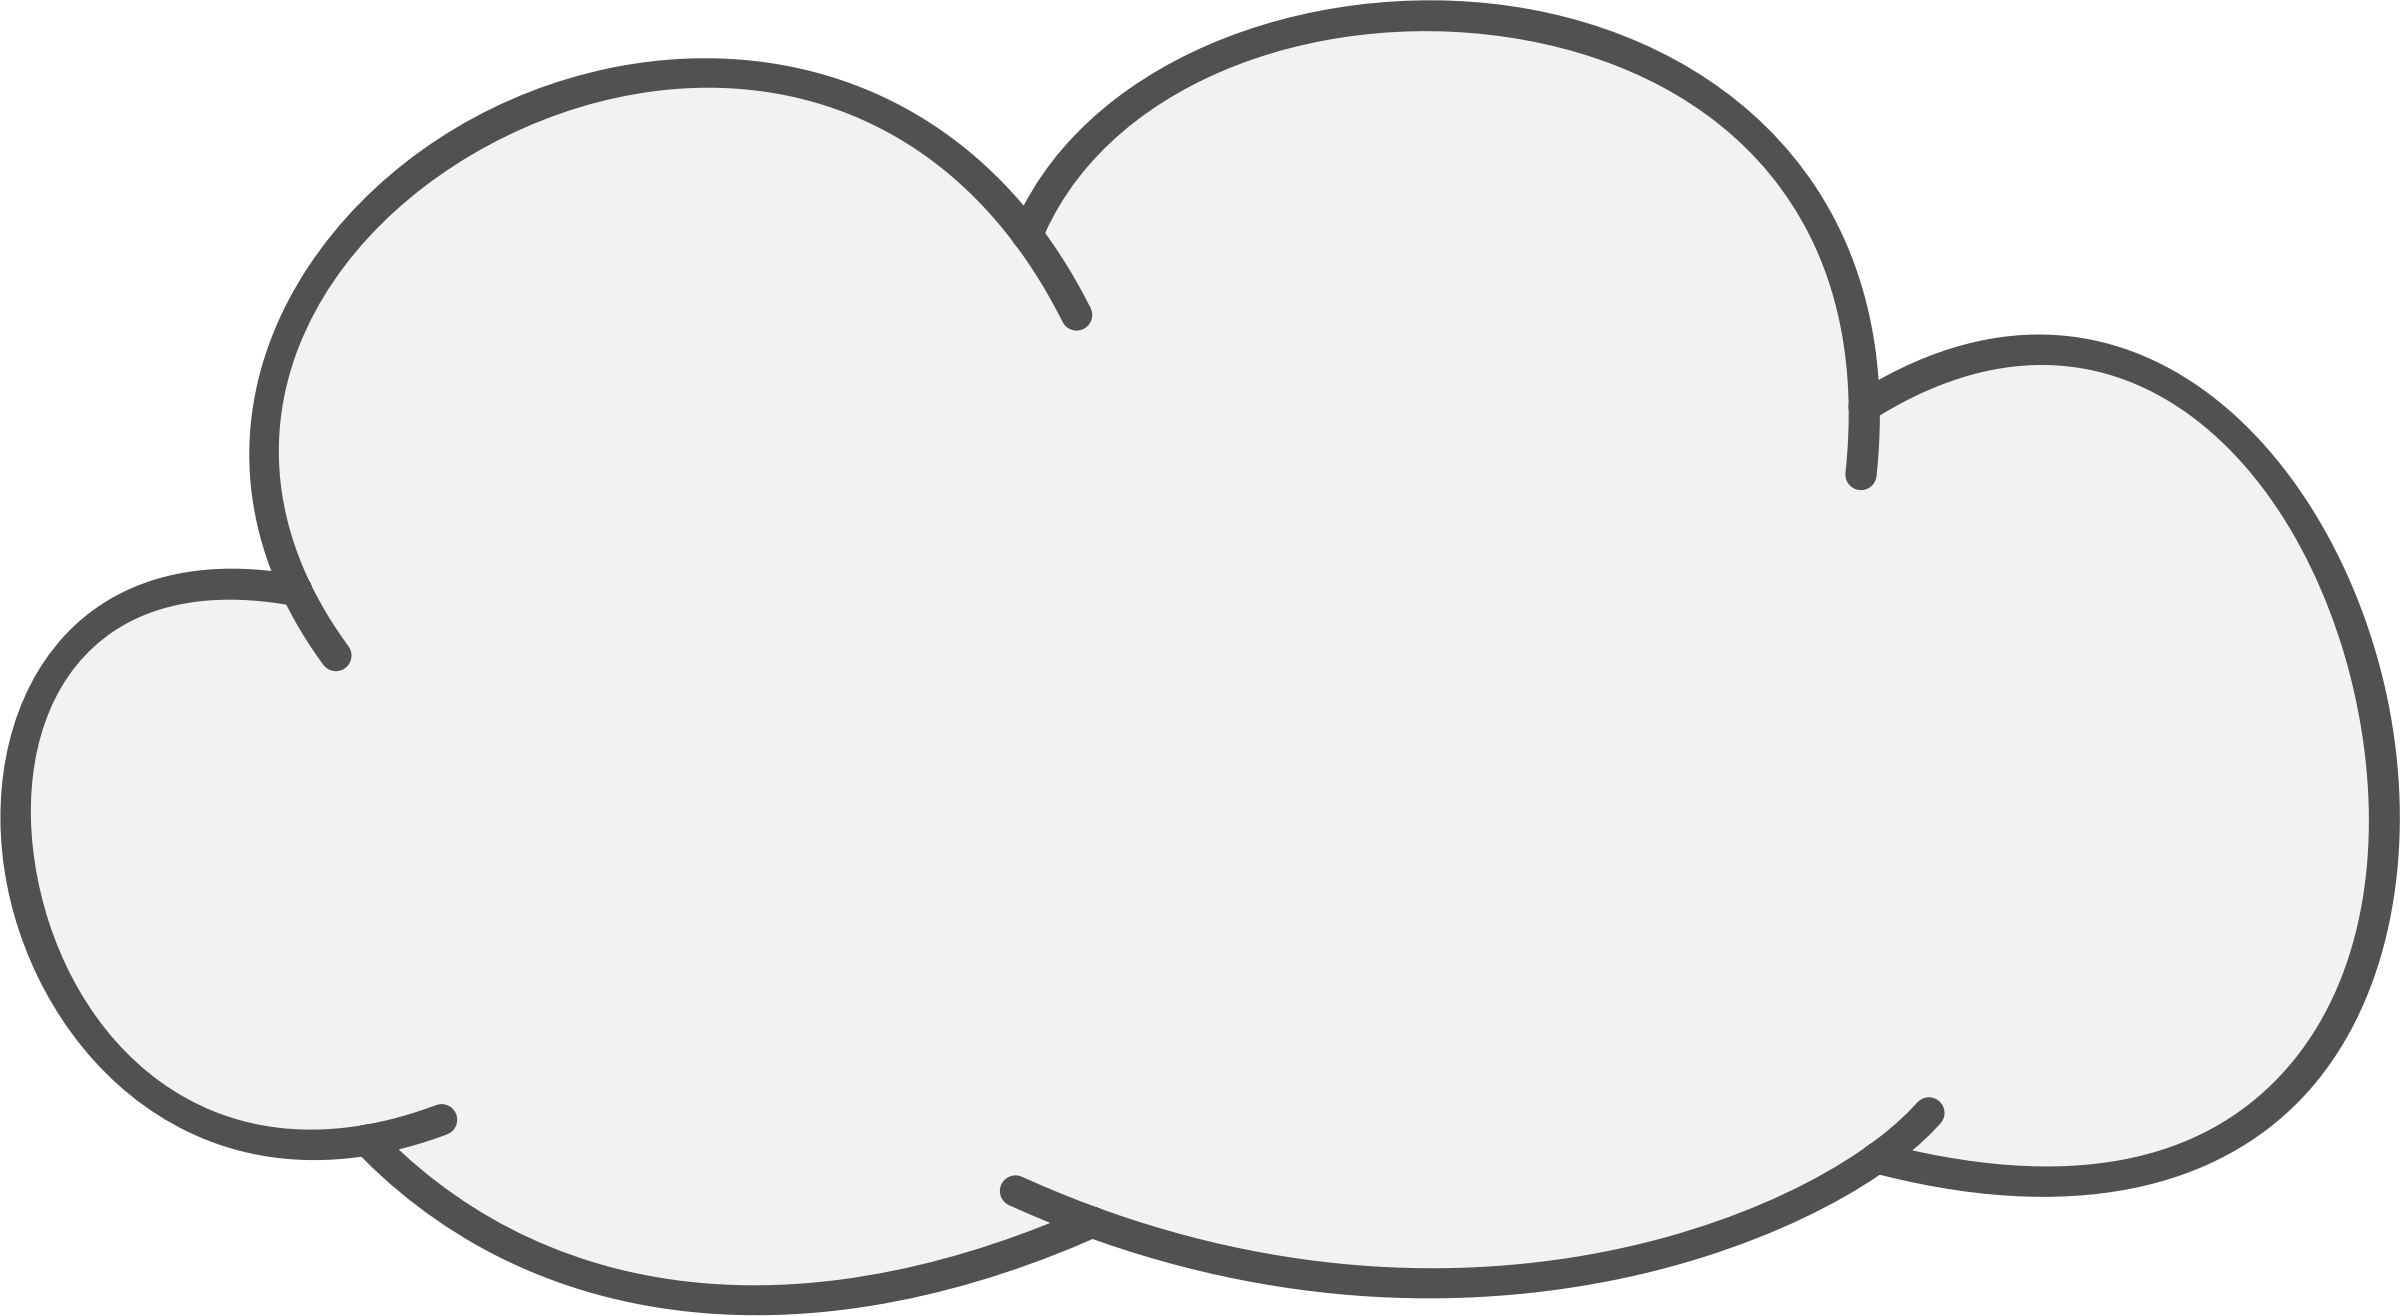 Clouds clipart transparent background.